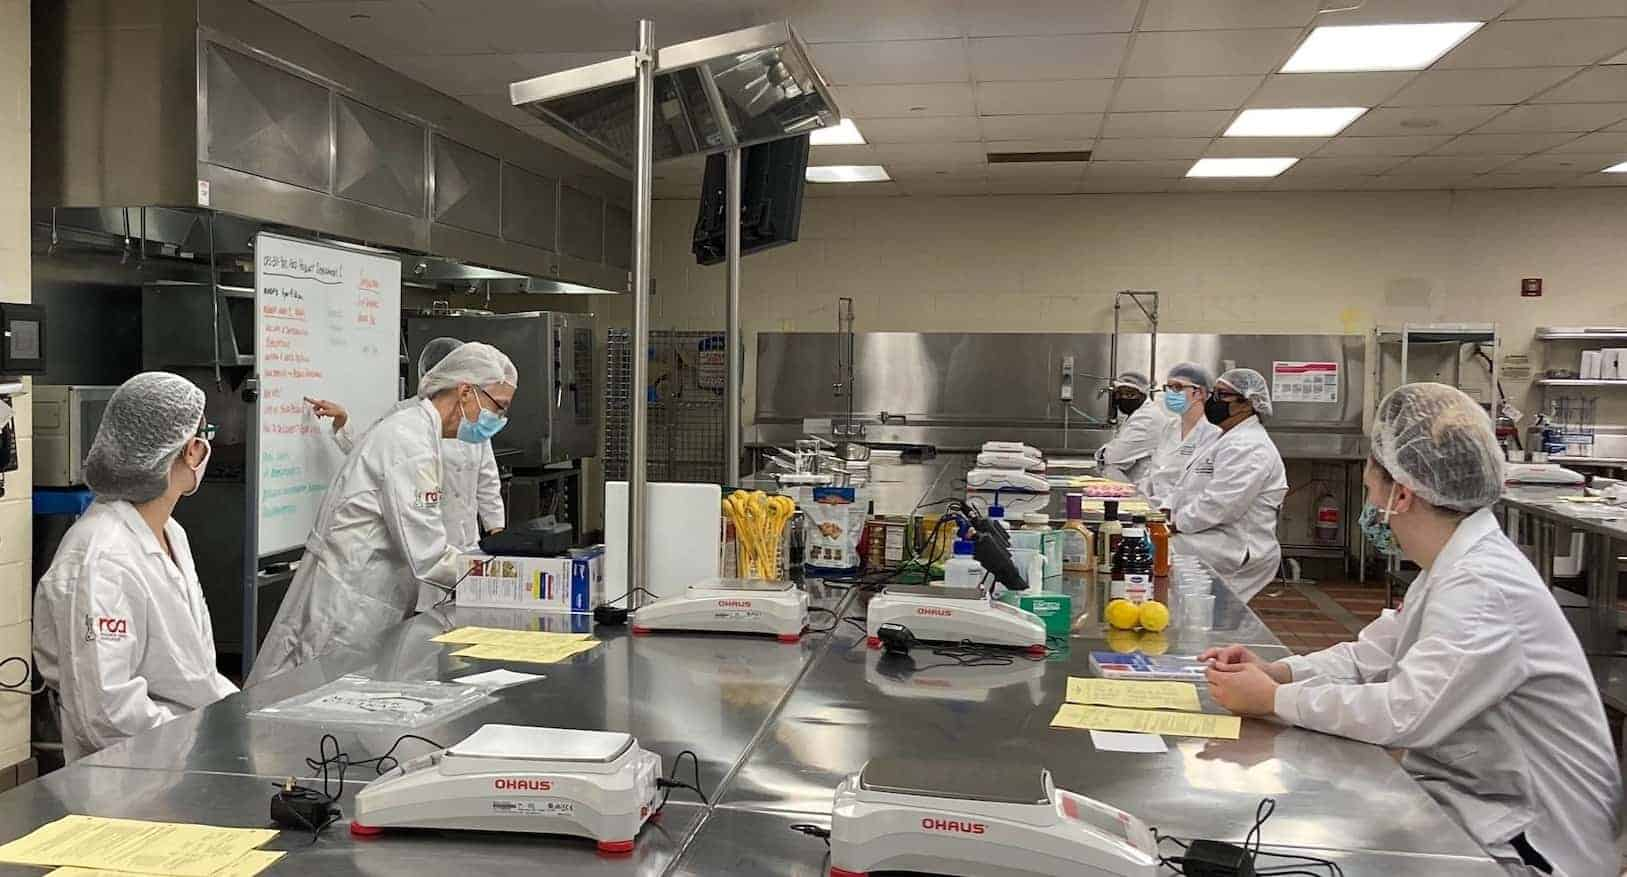 Culinary & Food Science students in lab